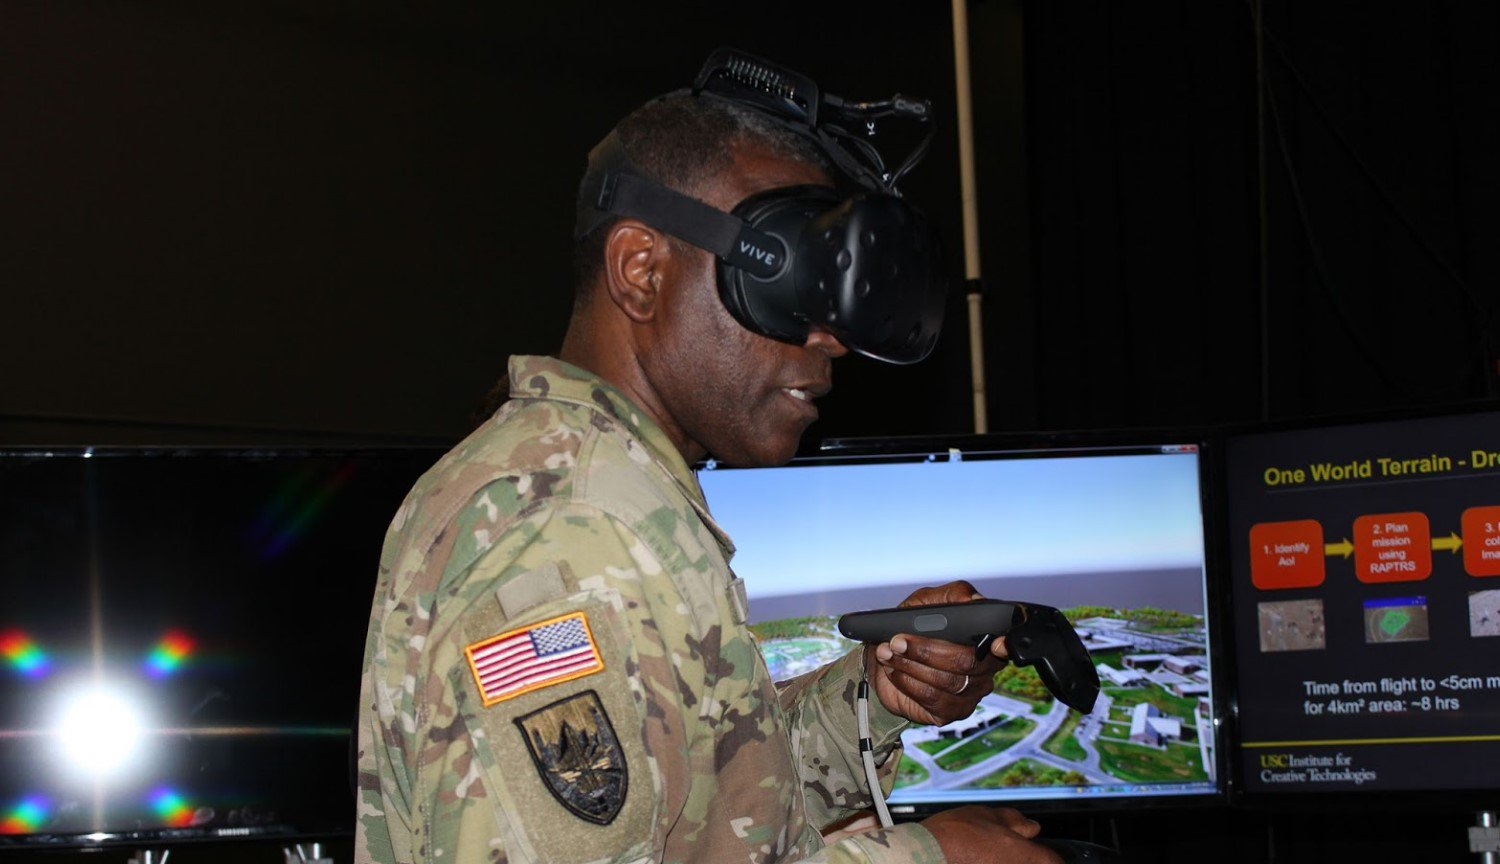 The U.S. army is developing a system for training soldiers in a virtual reality